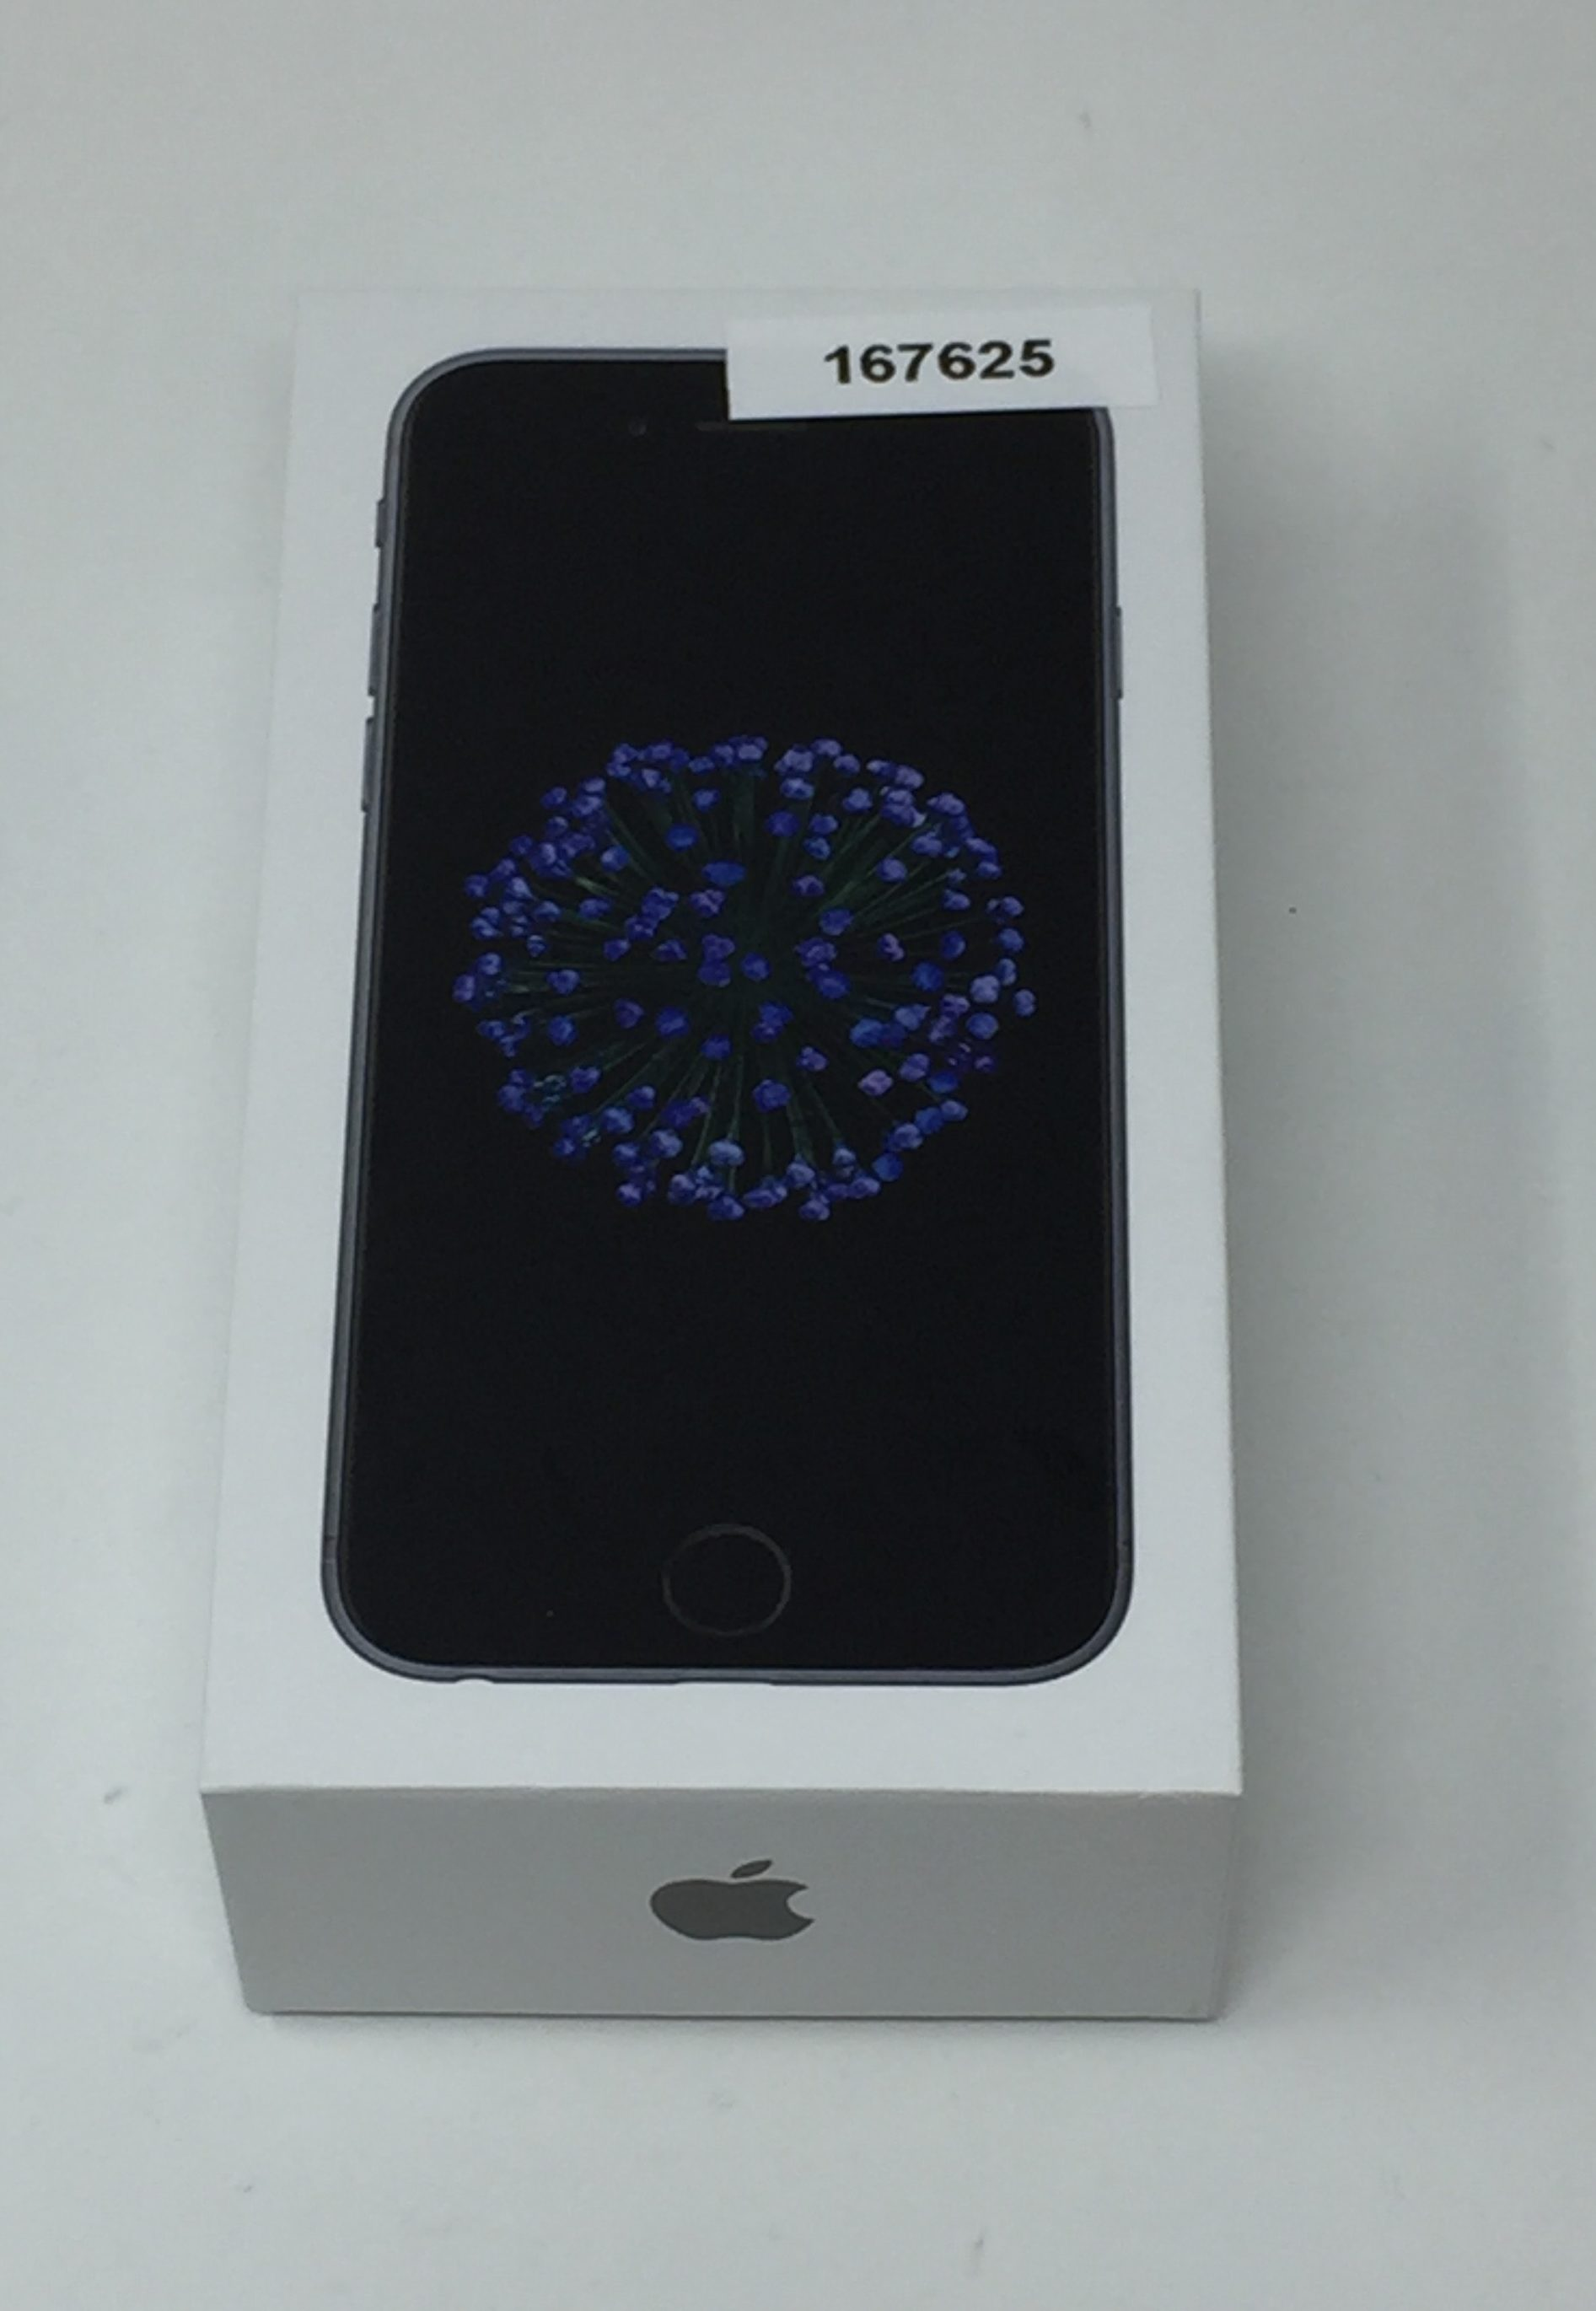 iPhone 6 32GB, 32 GB, GRAY, Afbeelding 6